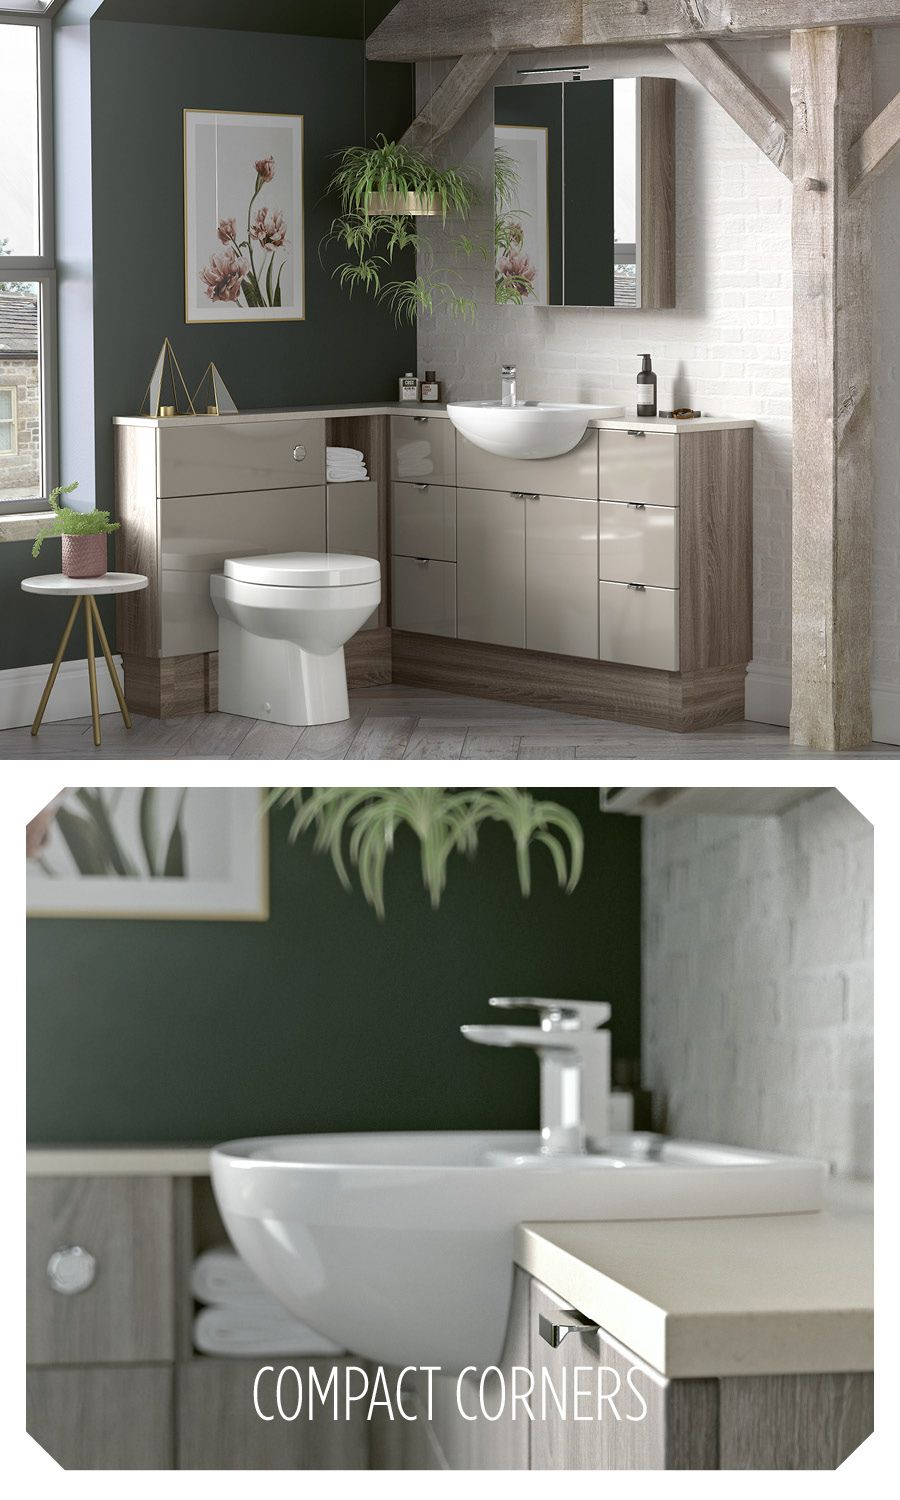 28 Fitted Bathroom Furniture Ideas Fitted Bathroom Furniture Bathroom Furniture Small Bathroom